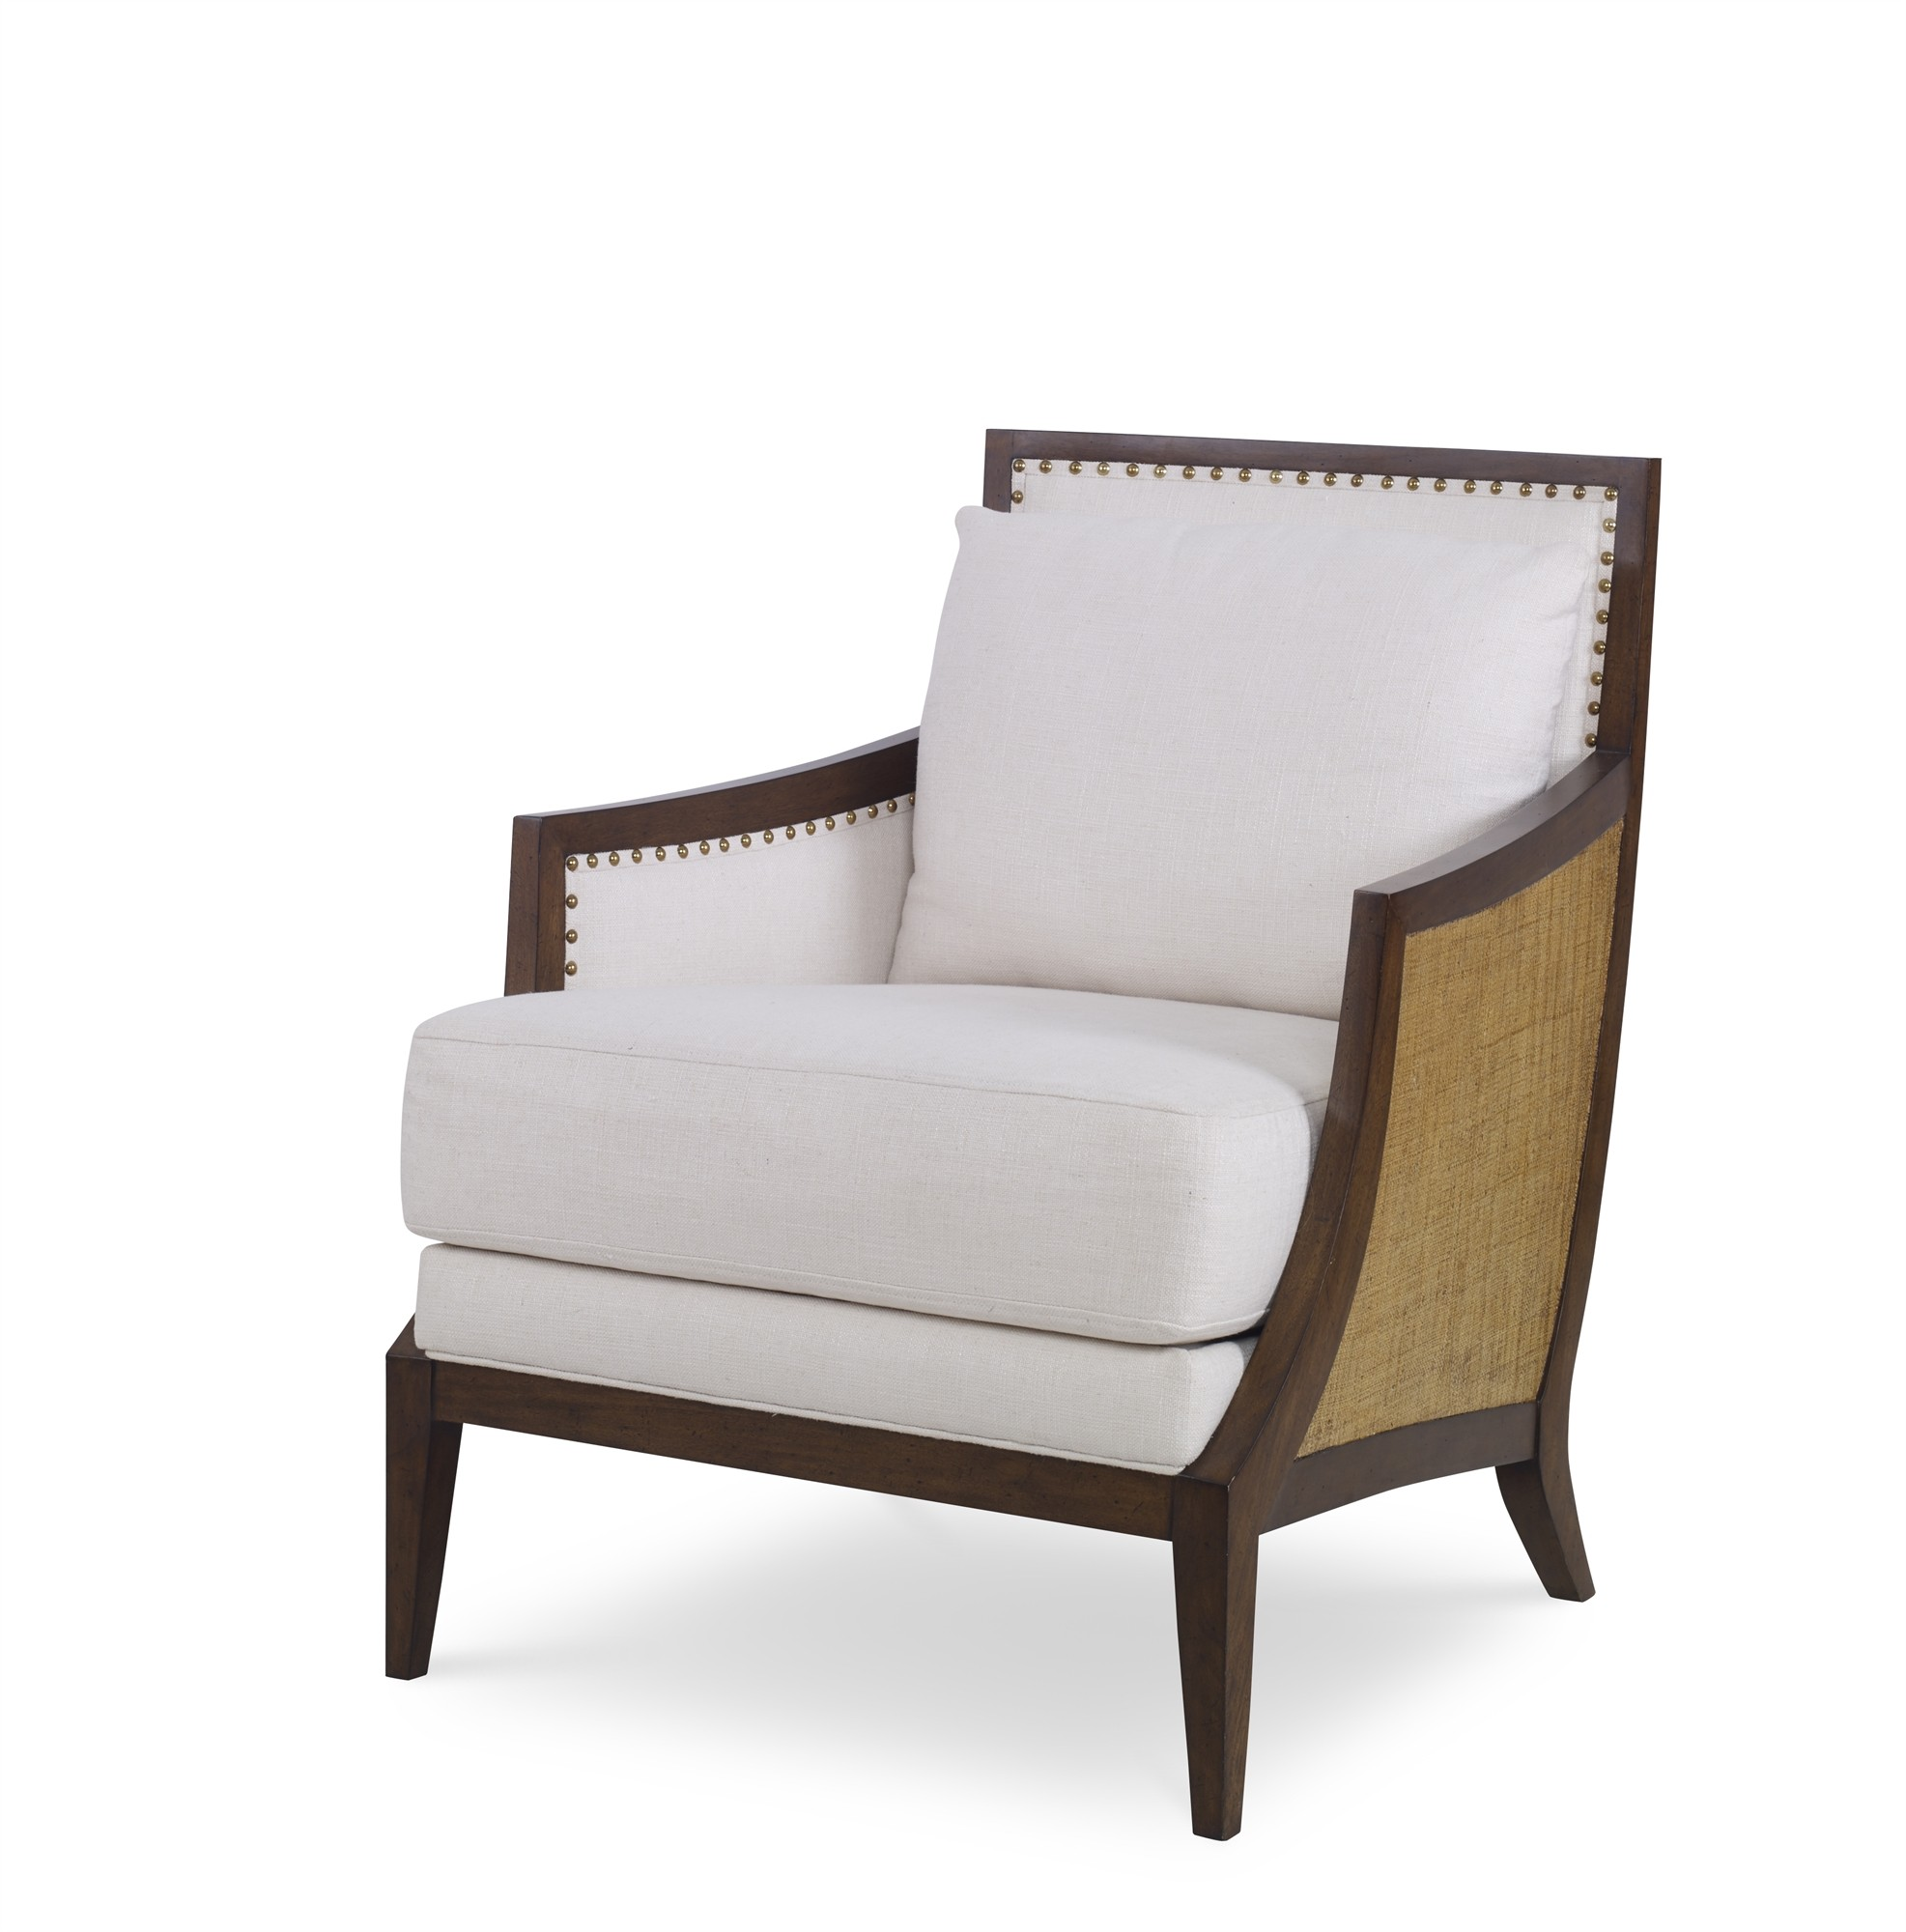 Chesapeake Lounge Chair-Sand/Light Brown/Flax (Pv-052-209-100-07)